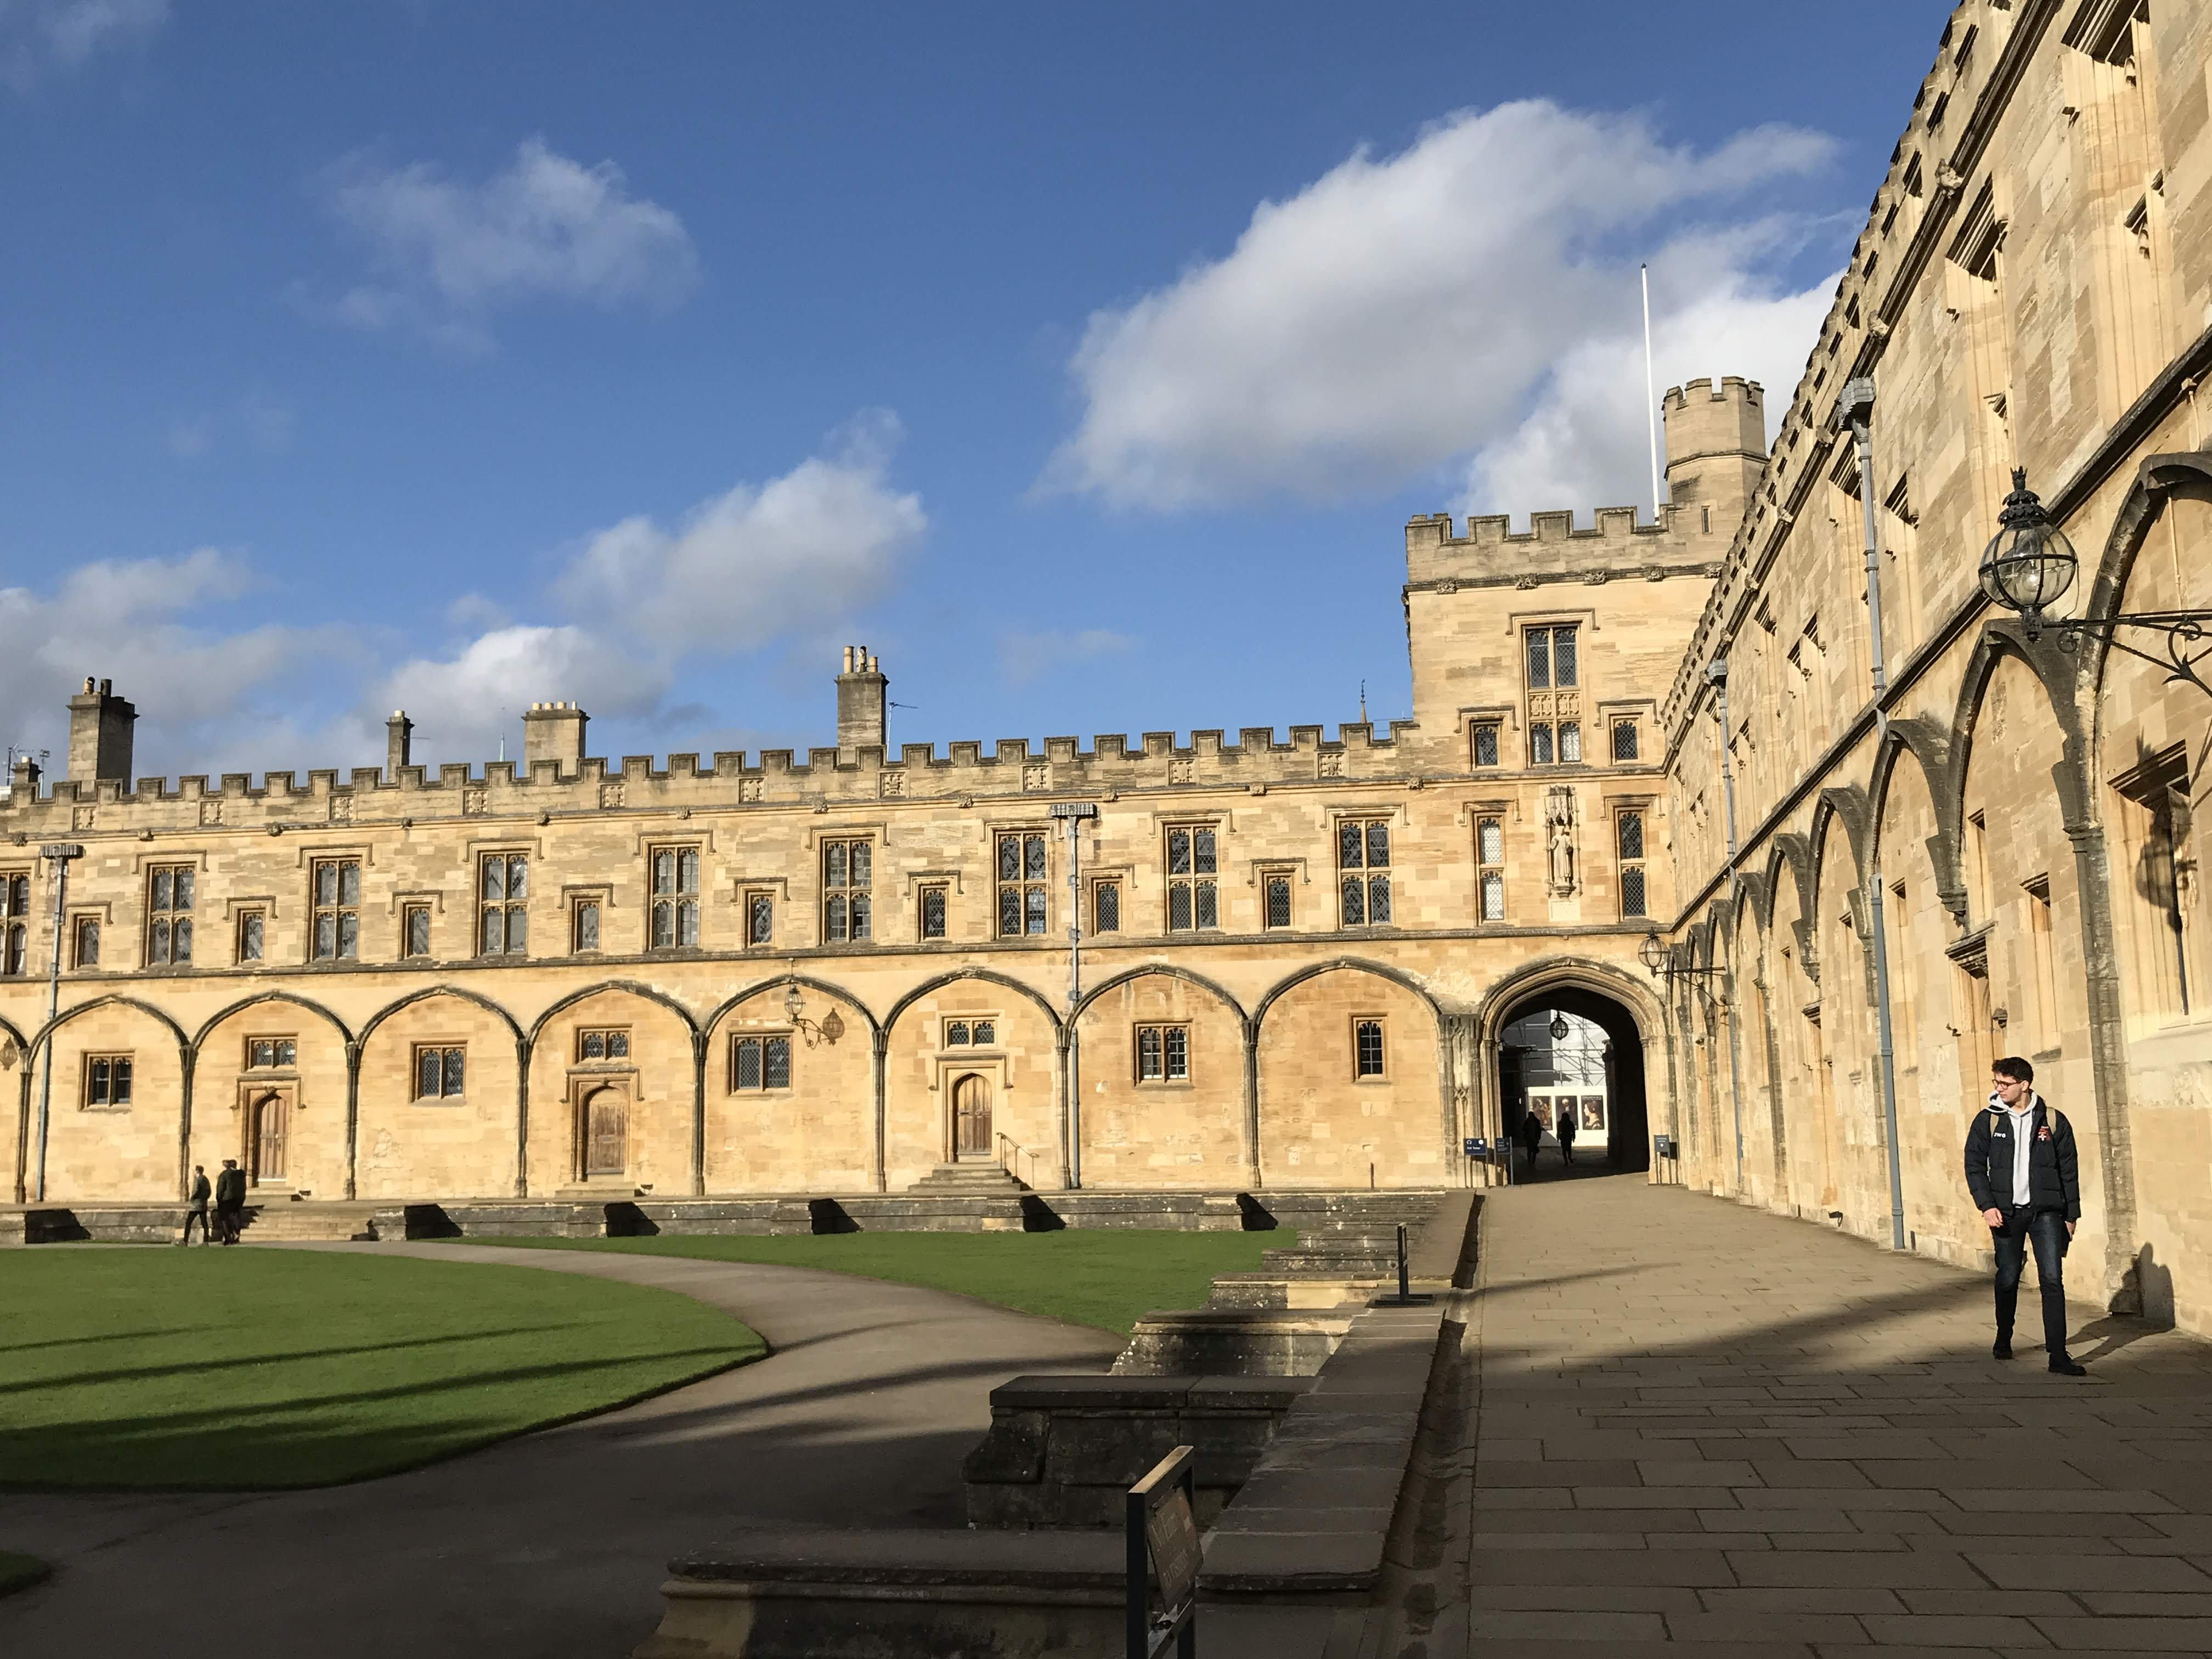 Running Home From Oxford: A Singapore Student's Perspective on Covid-19 in the UK